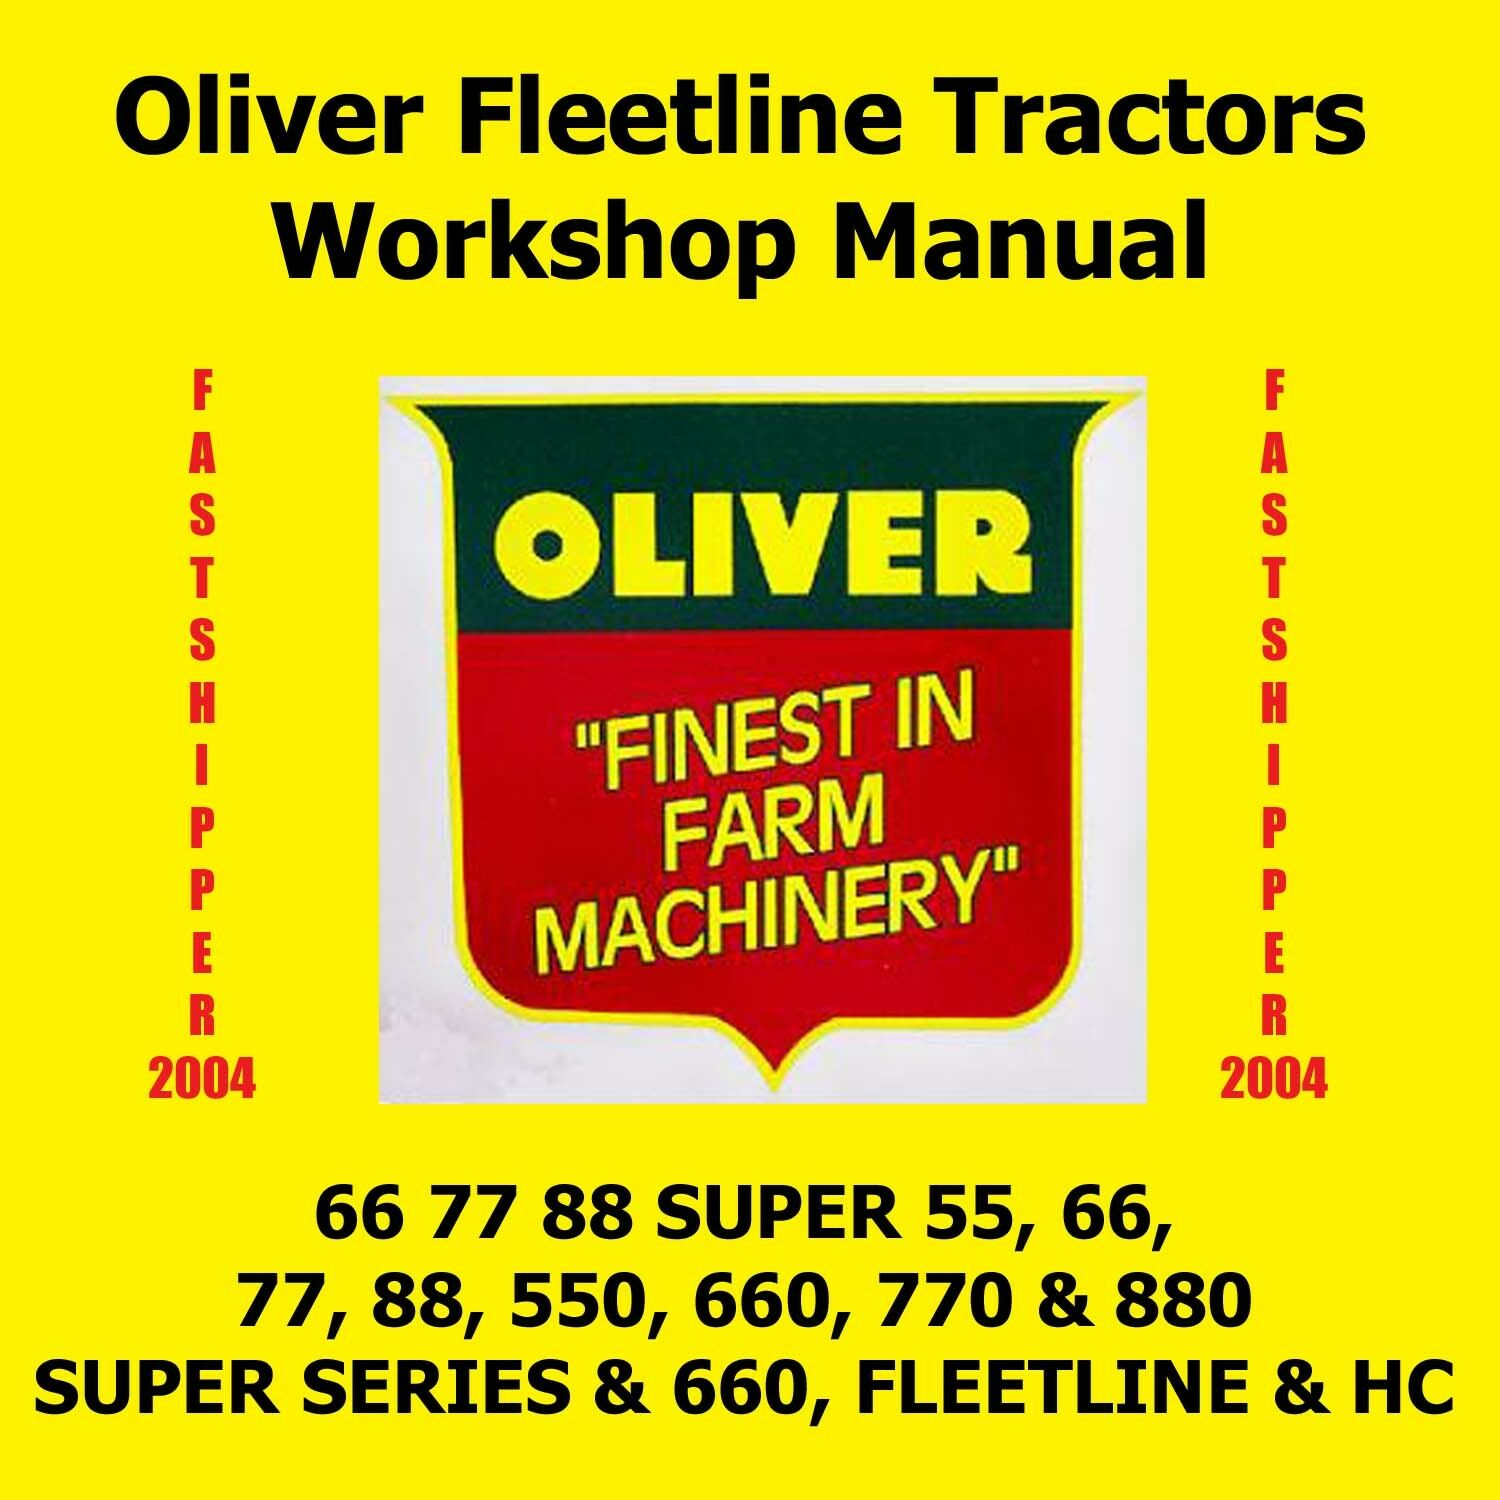 Wiring Diagrams For 1959 880 Oliver Diagram 88 Appealing Super 55 Diesel Images Best Image 660